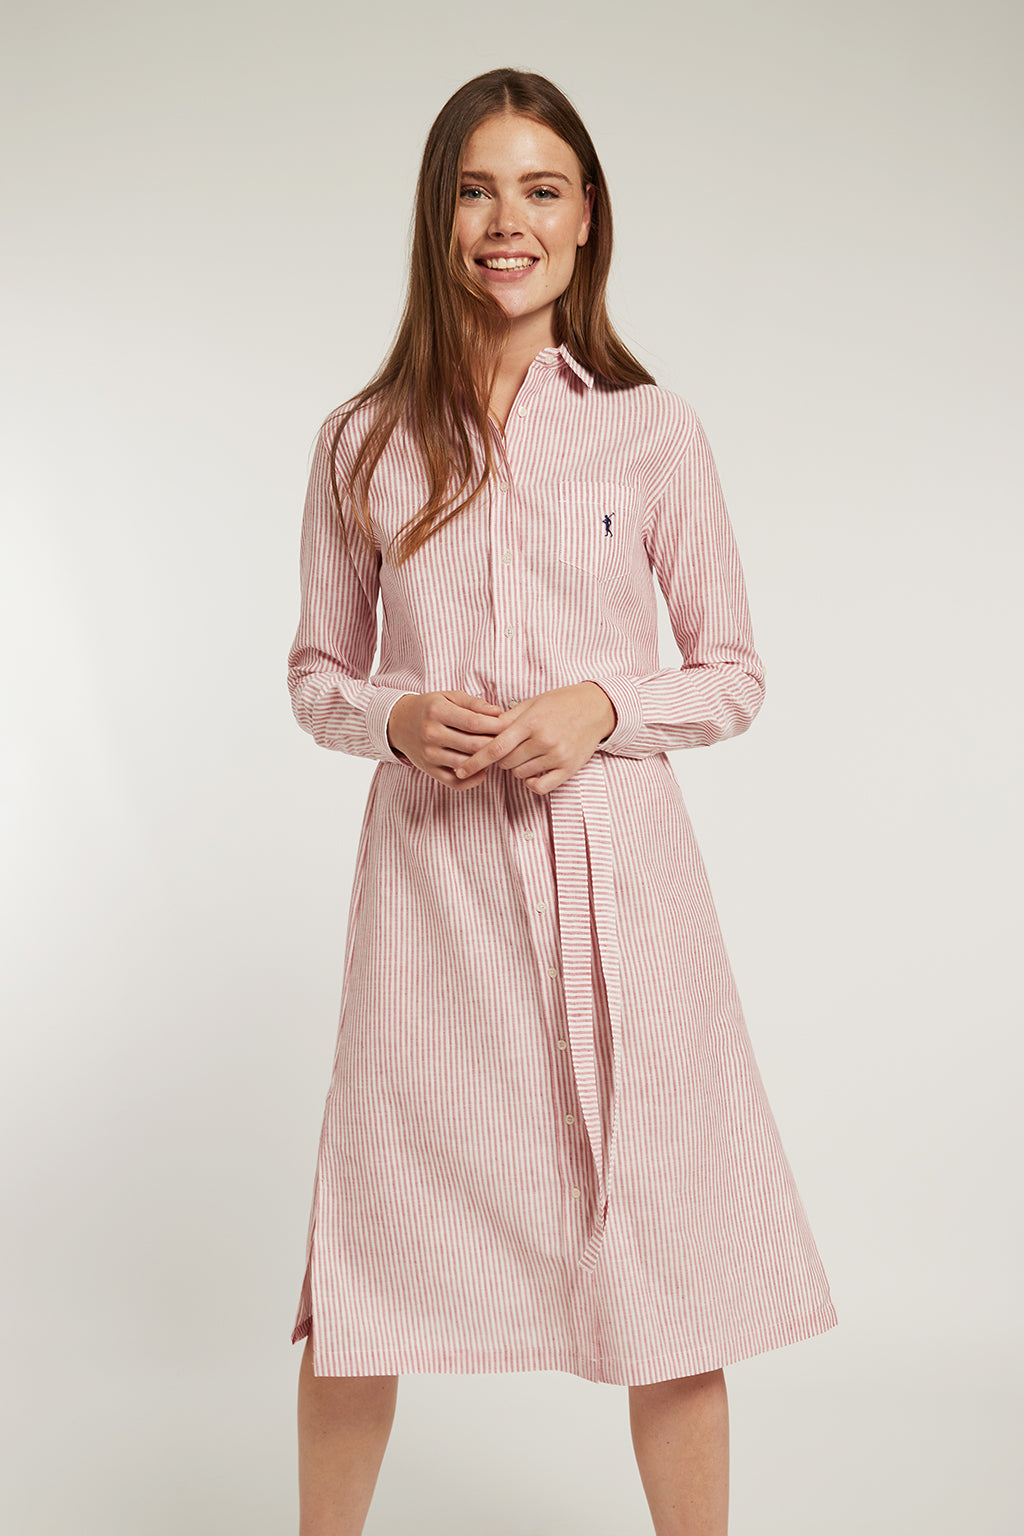 Linen and cotton dress with red stripes